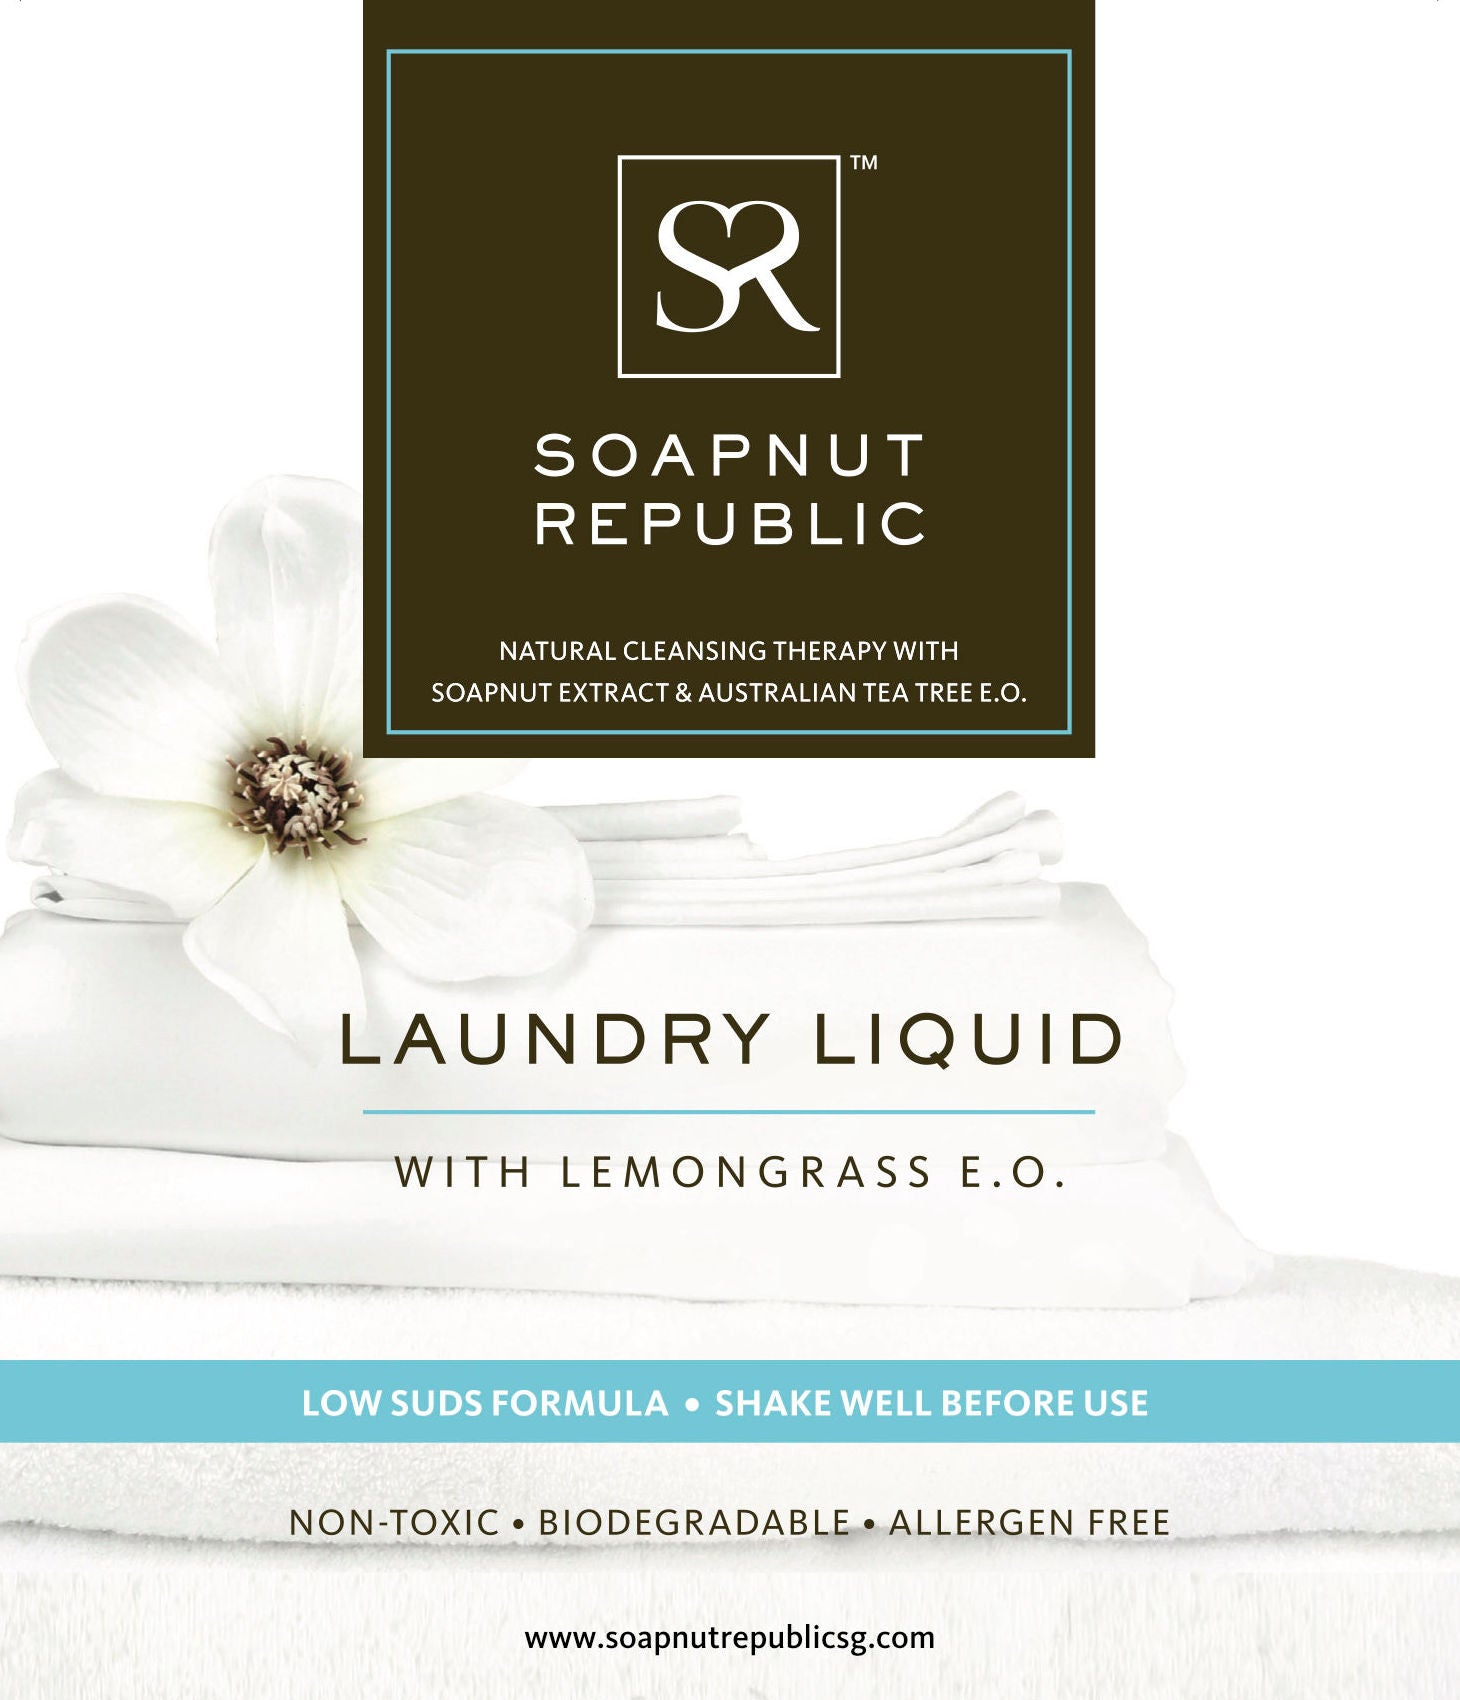 Soapnut Republic - Laundry Liquid with Lemongrass